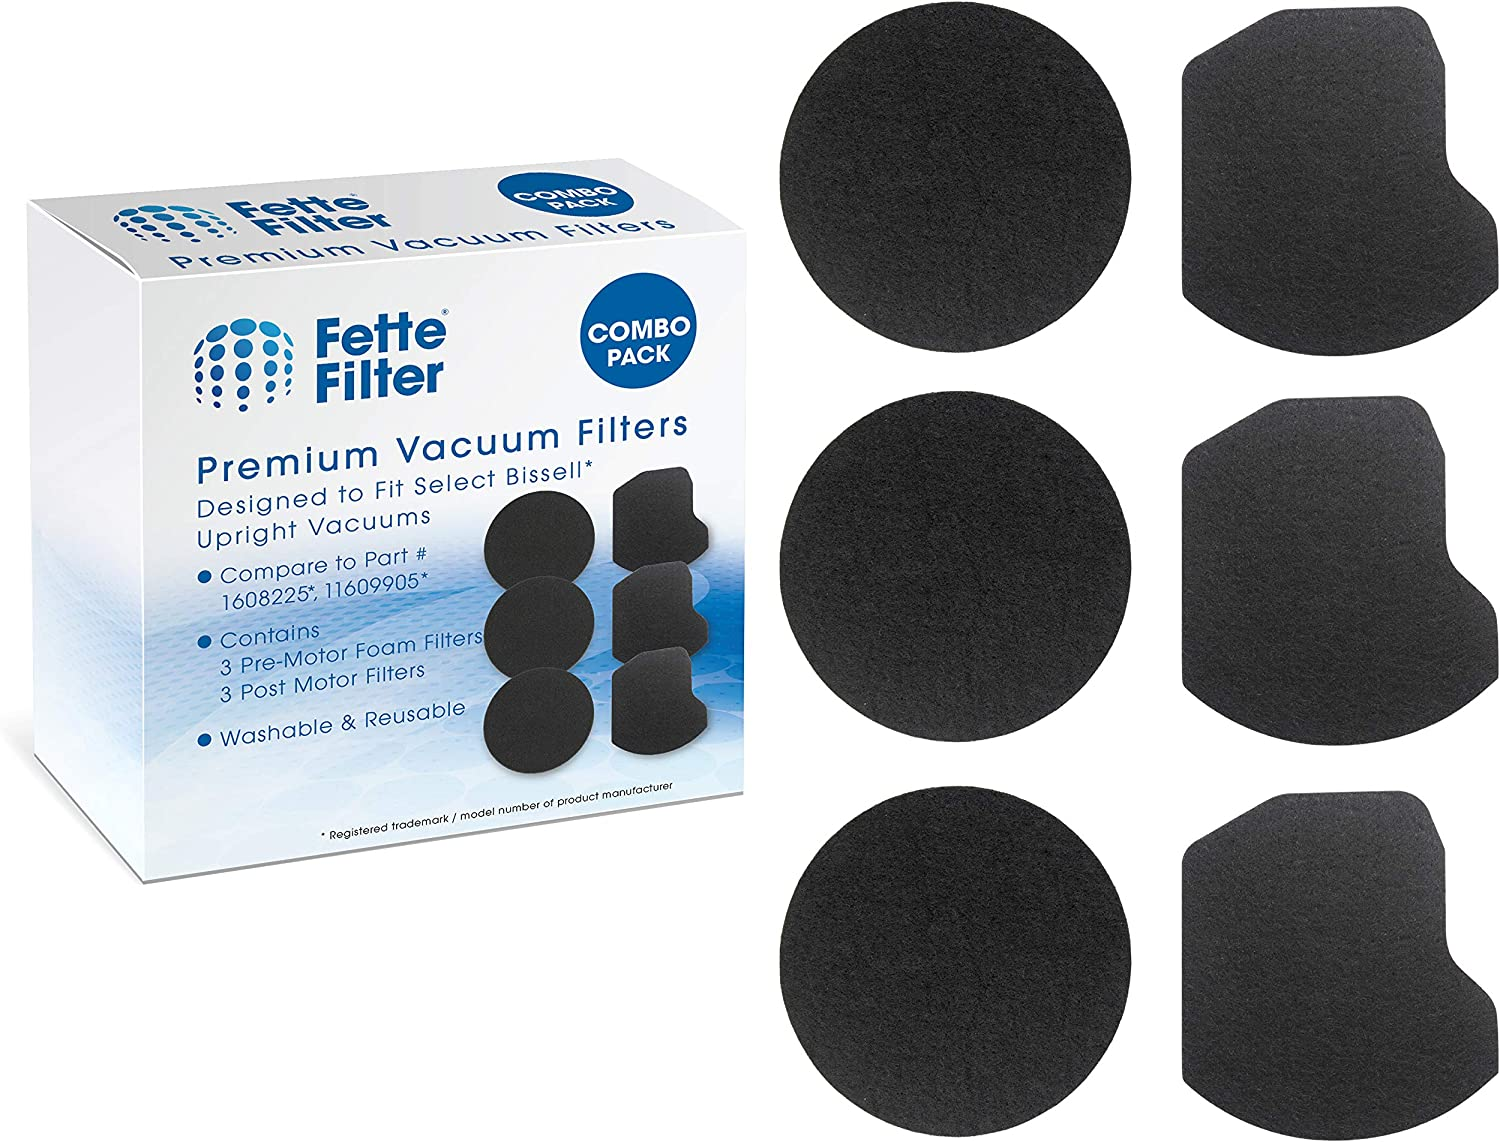 Fette Filter - Vacuum Filter Kit Compatible with Bissell Power Force Helix Turbo Rewind Upright Vacuum 1797. Compare to Part # 1608225 & 1609905. Combo Pack